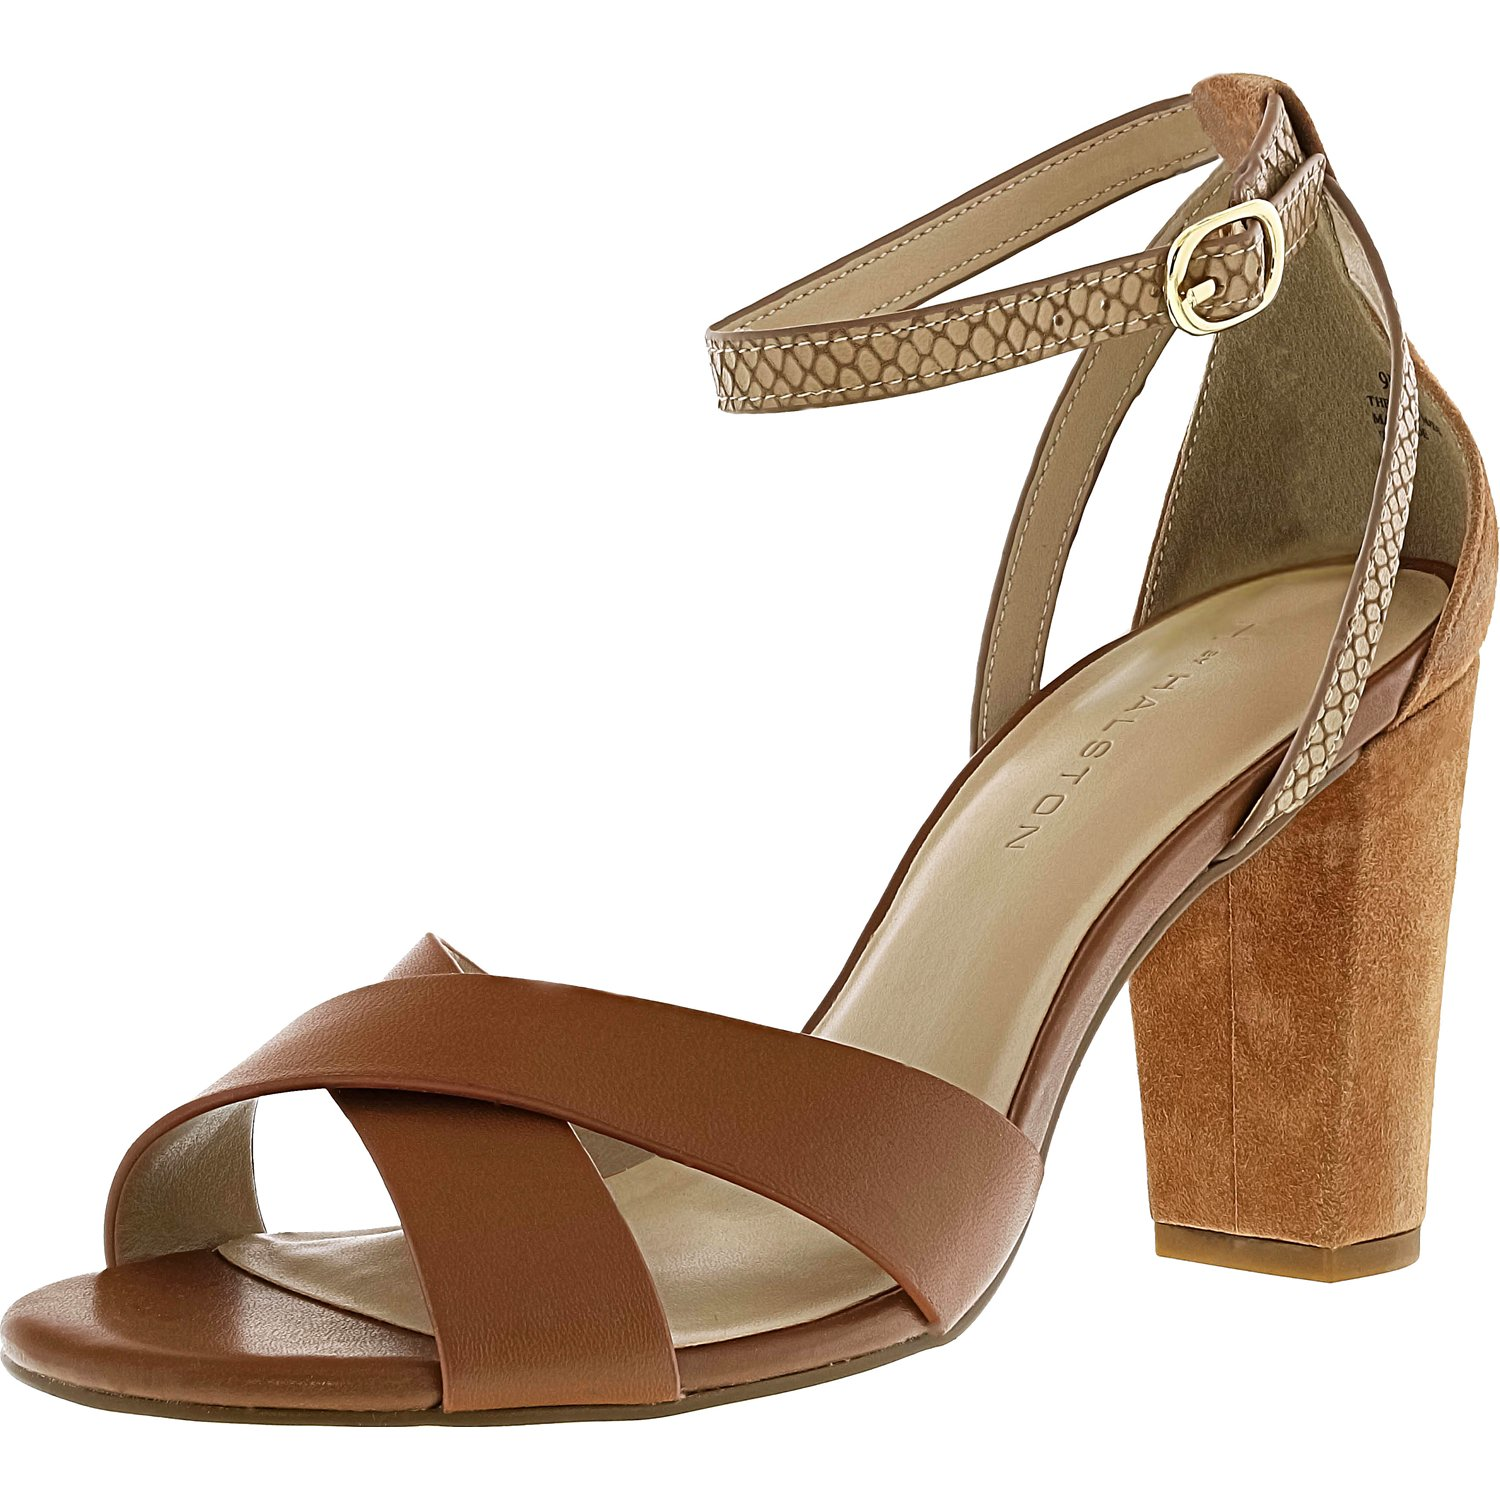 H By Halston Women's Kaely Cognac Ankle-High Leather Pump - 5M